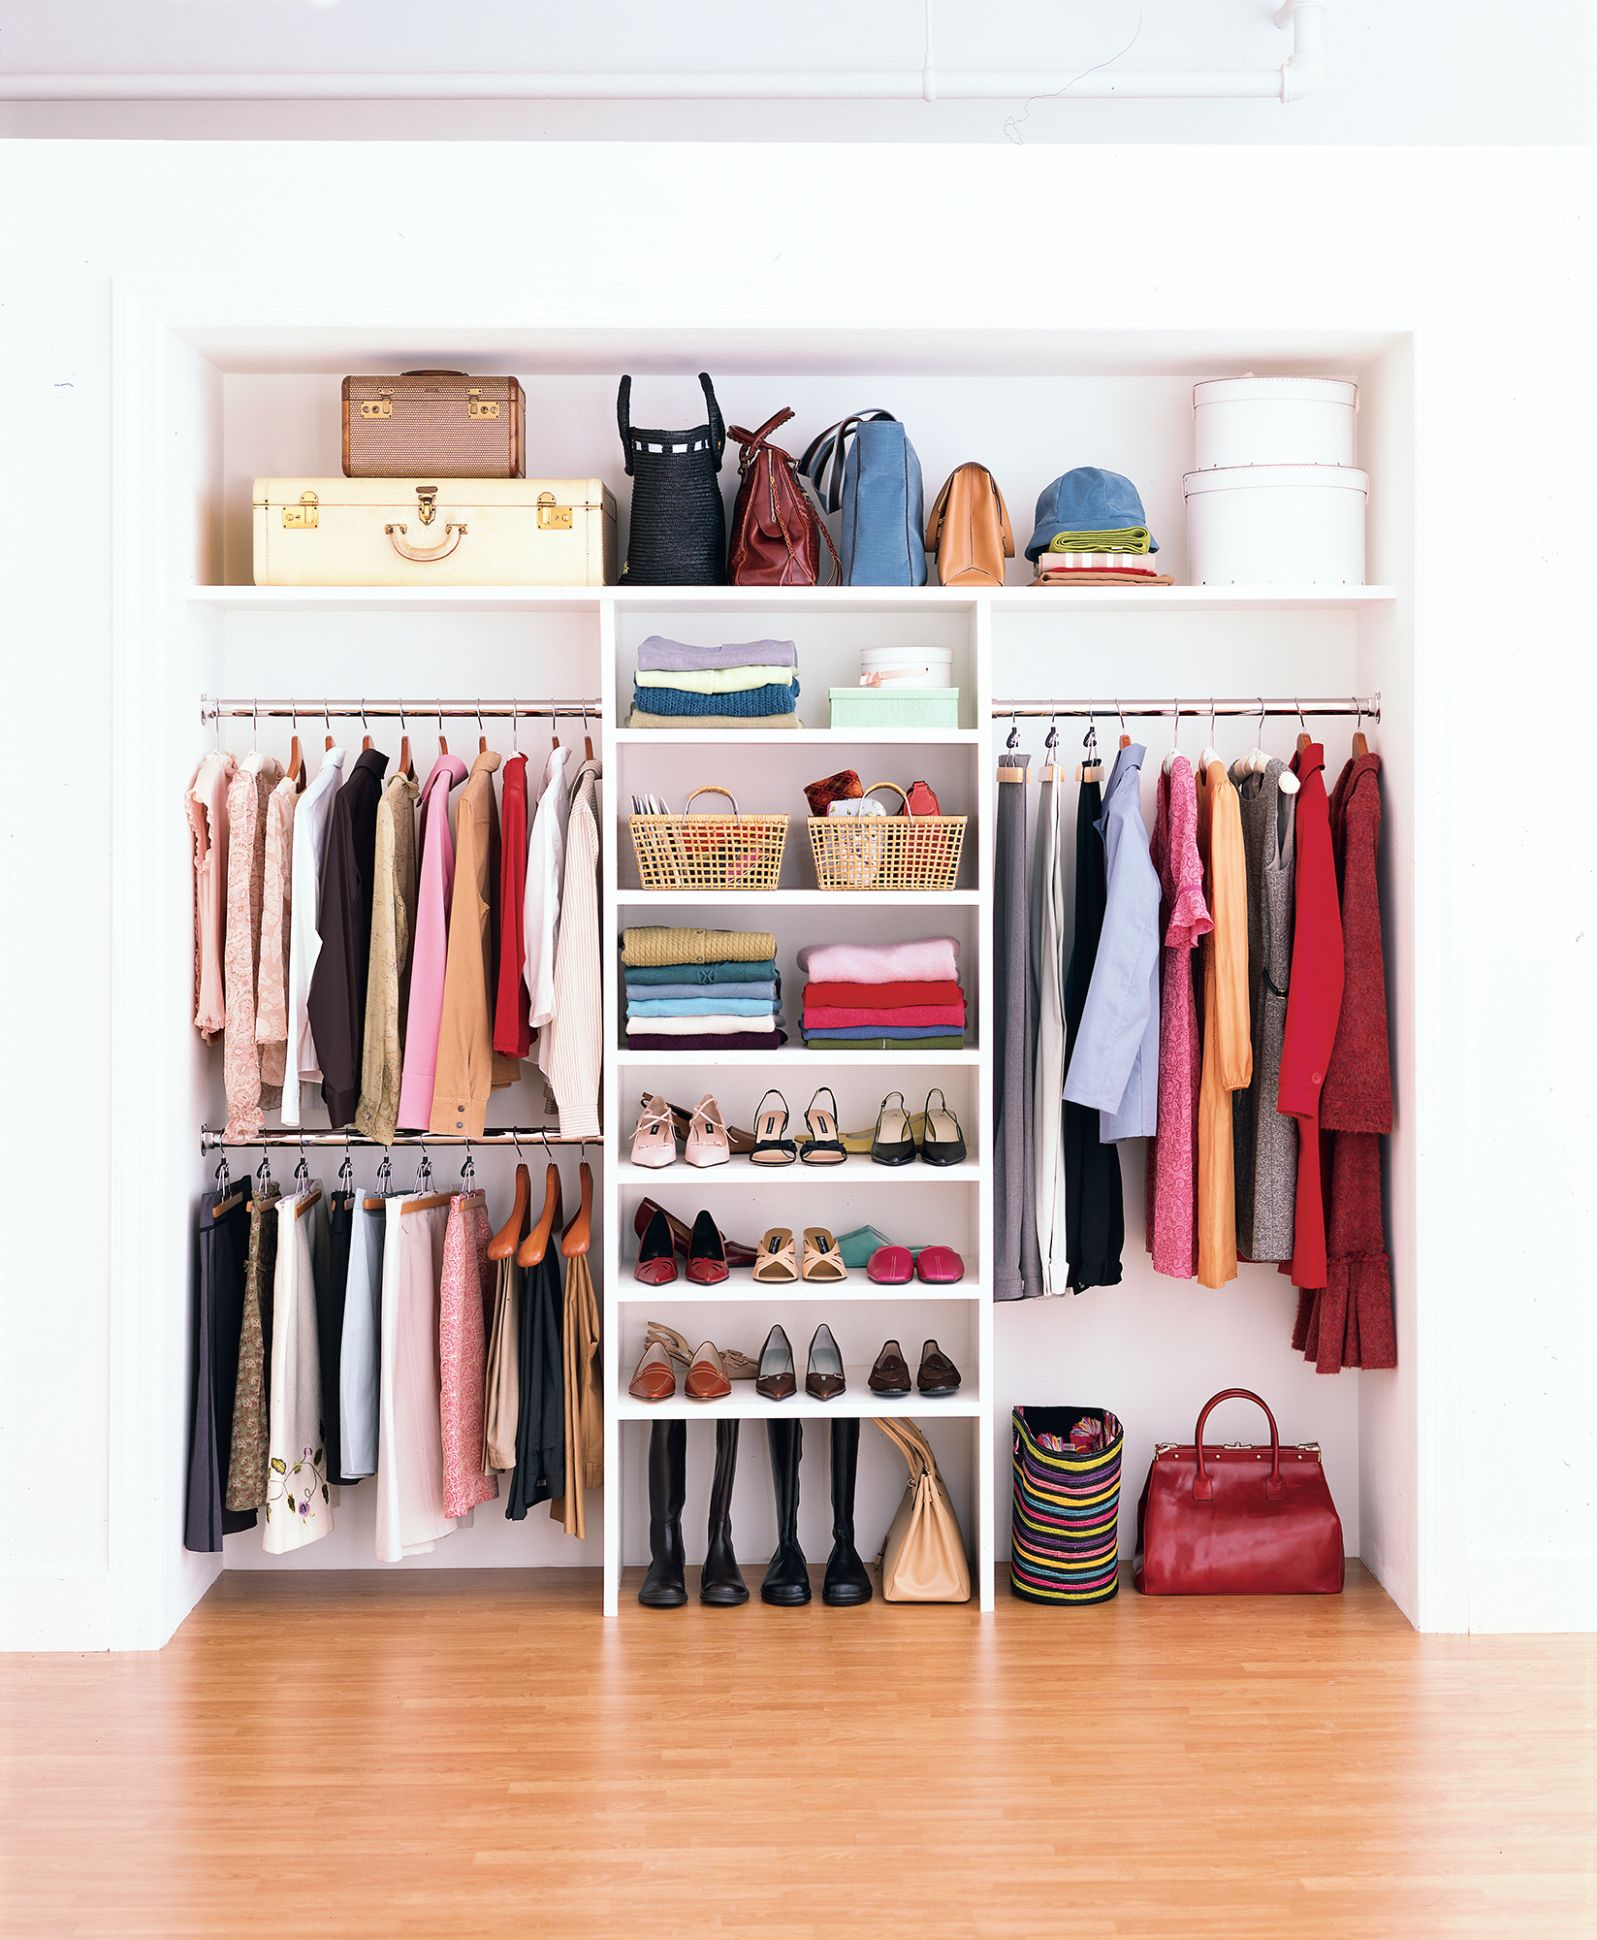 How to Maximize Your Closet Space | Real Simple